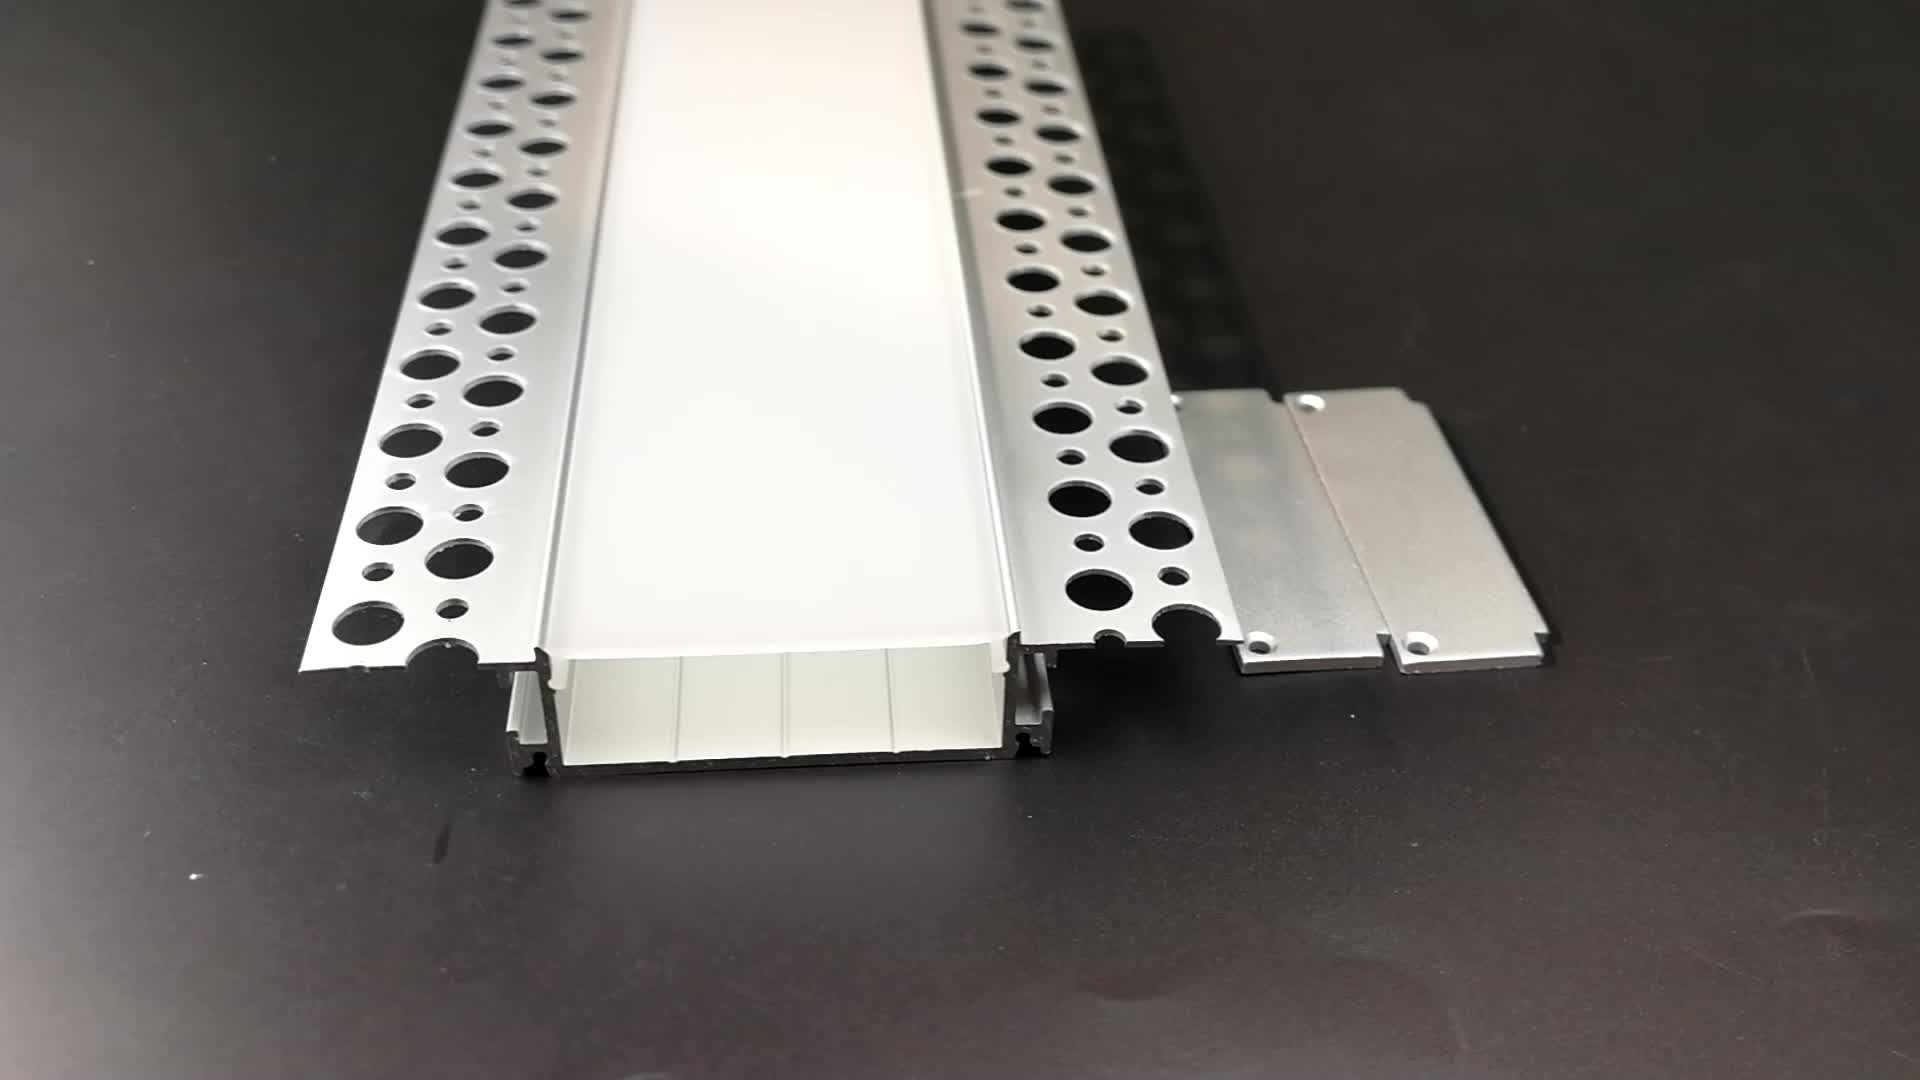 3meter length Plaster Drywall Aluminum led profile channel for 45mm double row led strip 5050/3528/2835/5730